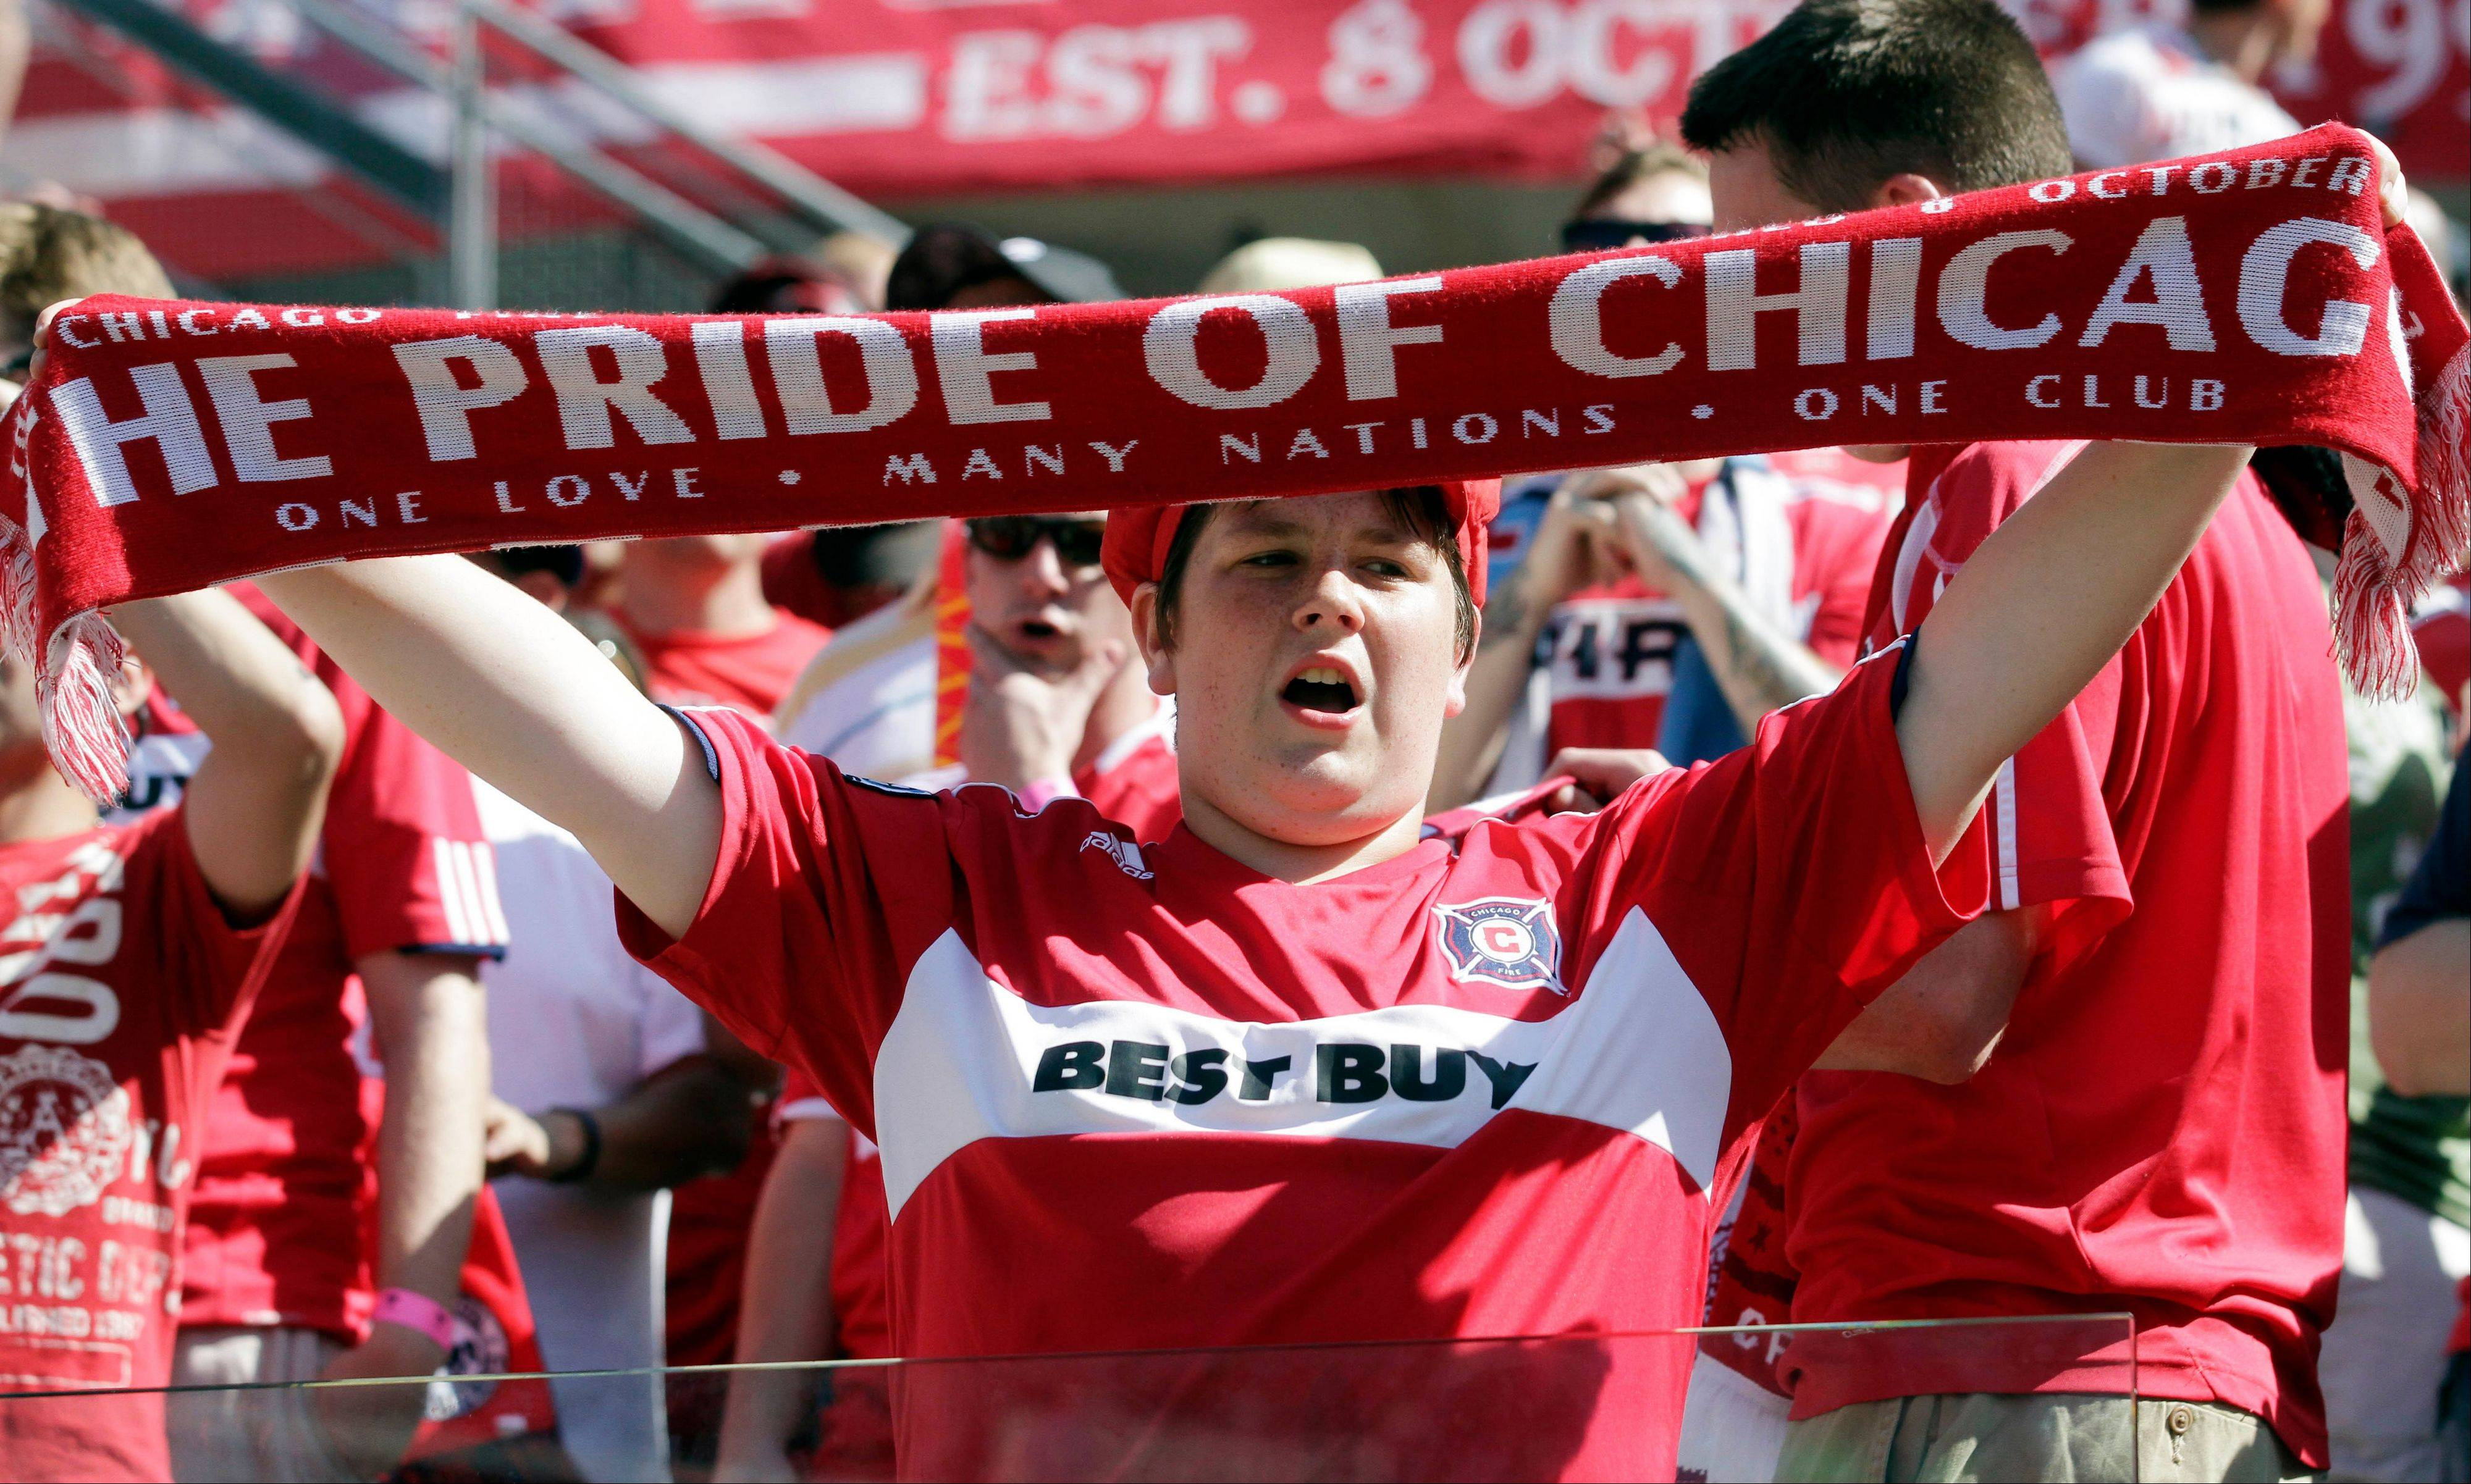 Chicago Fire fans turned out in force for the friendly soccer match between Manchester United and the Fire at Soldier Field last weekend. The Fire, however, needs to put together a win streak to make the playoffs and draw fans back to Toyota Park.